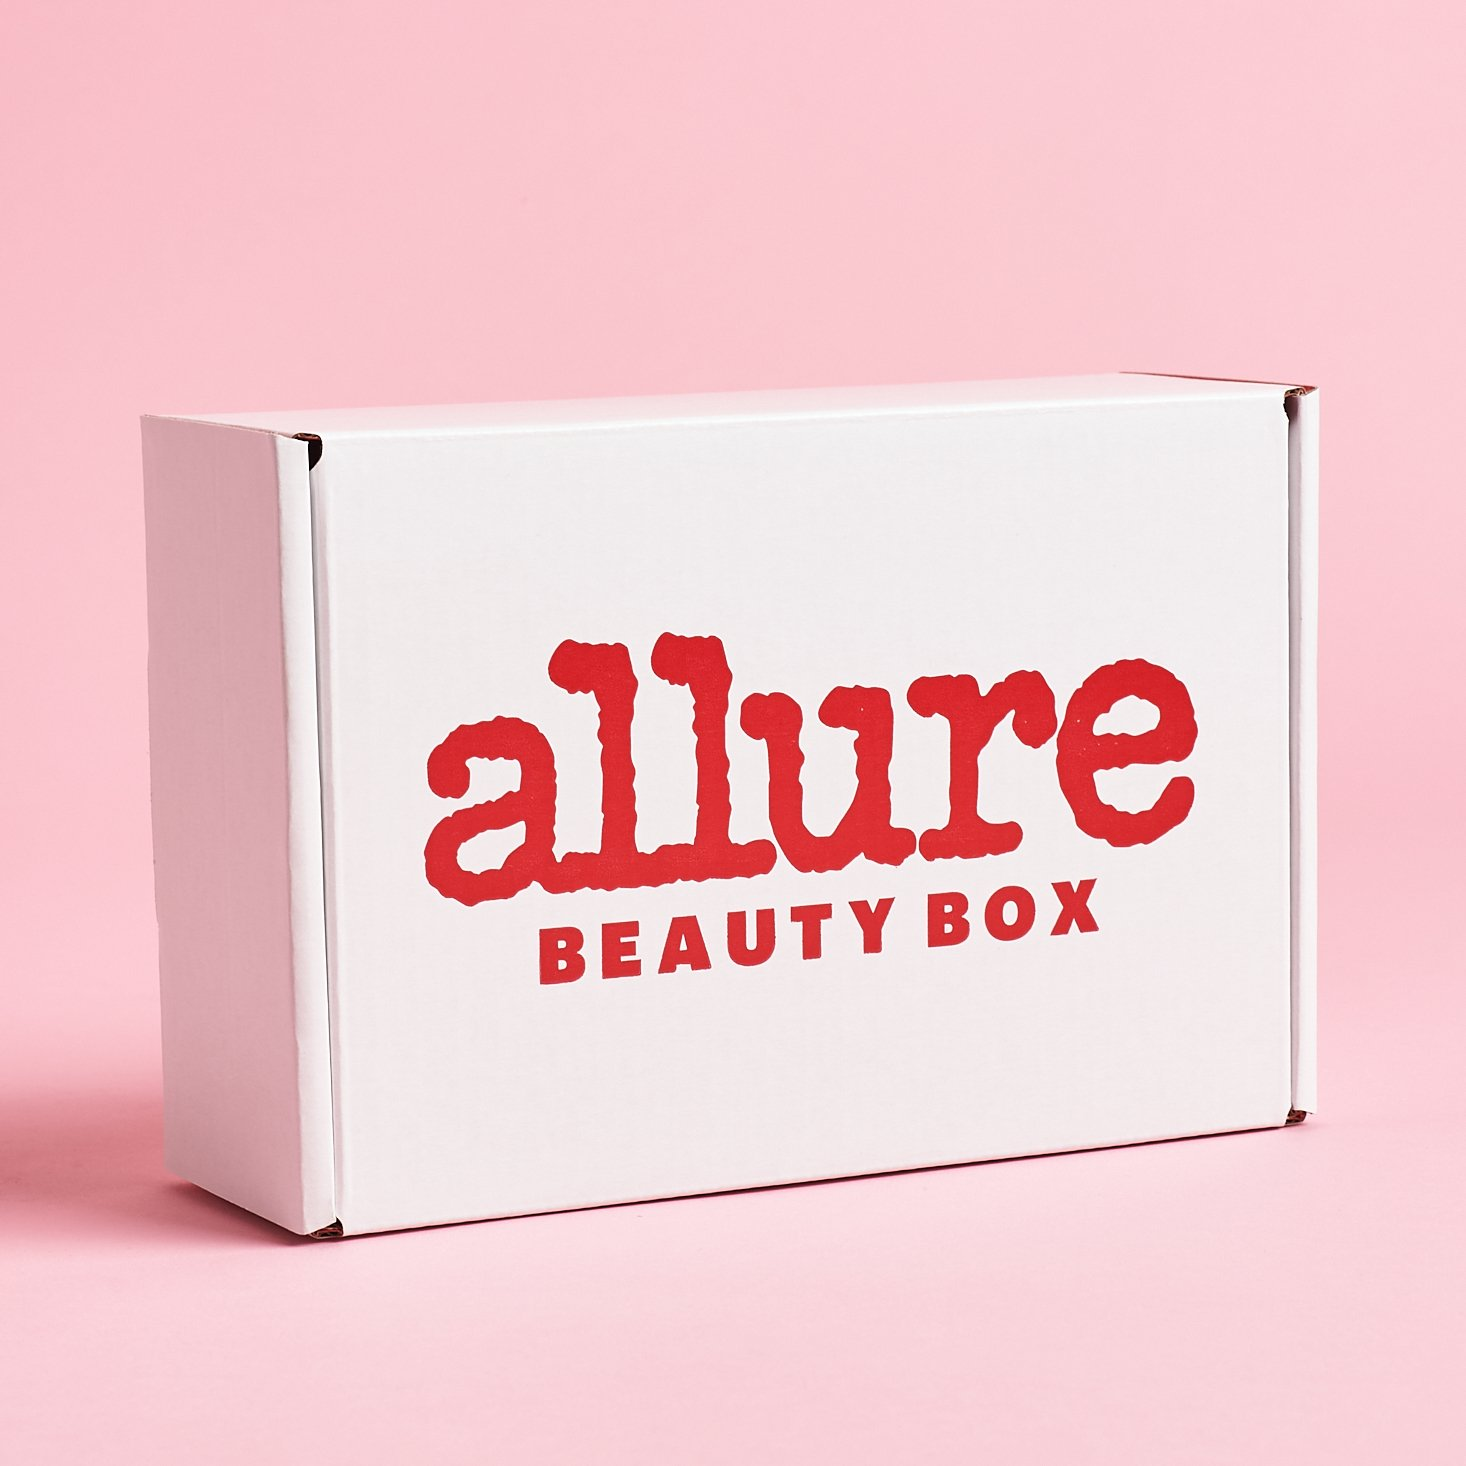 Allure Beauty Box August 2021 – Full Spoilers for New & Renewing Members